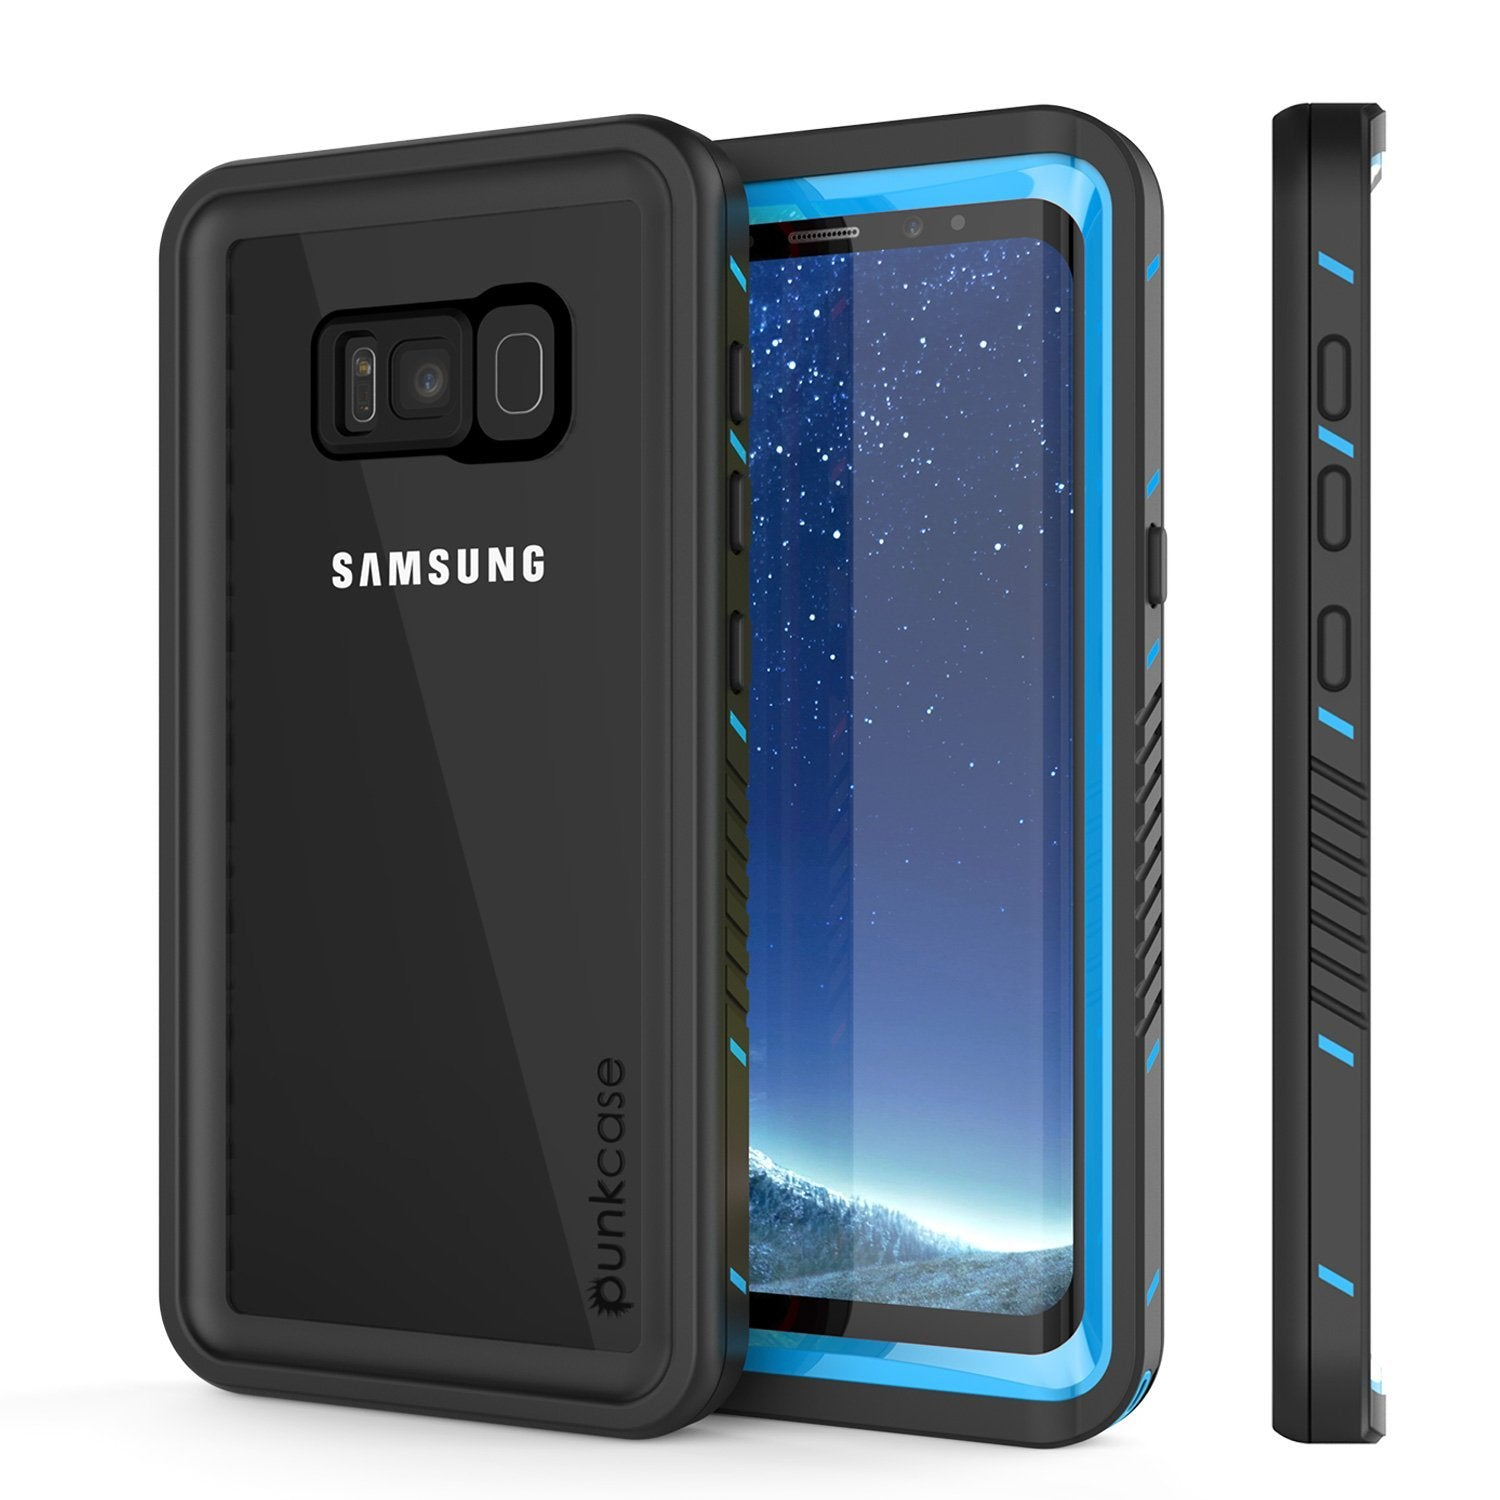 new product 1d95d cf801 Galaxy S8 PLUS Waterproof Case, Punkcase [Extreme Series] [Slim Fit] [IP68  Certified] Built In Screen Protector [Light Blue]